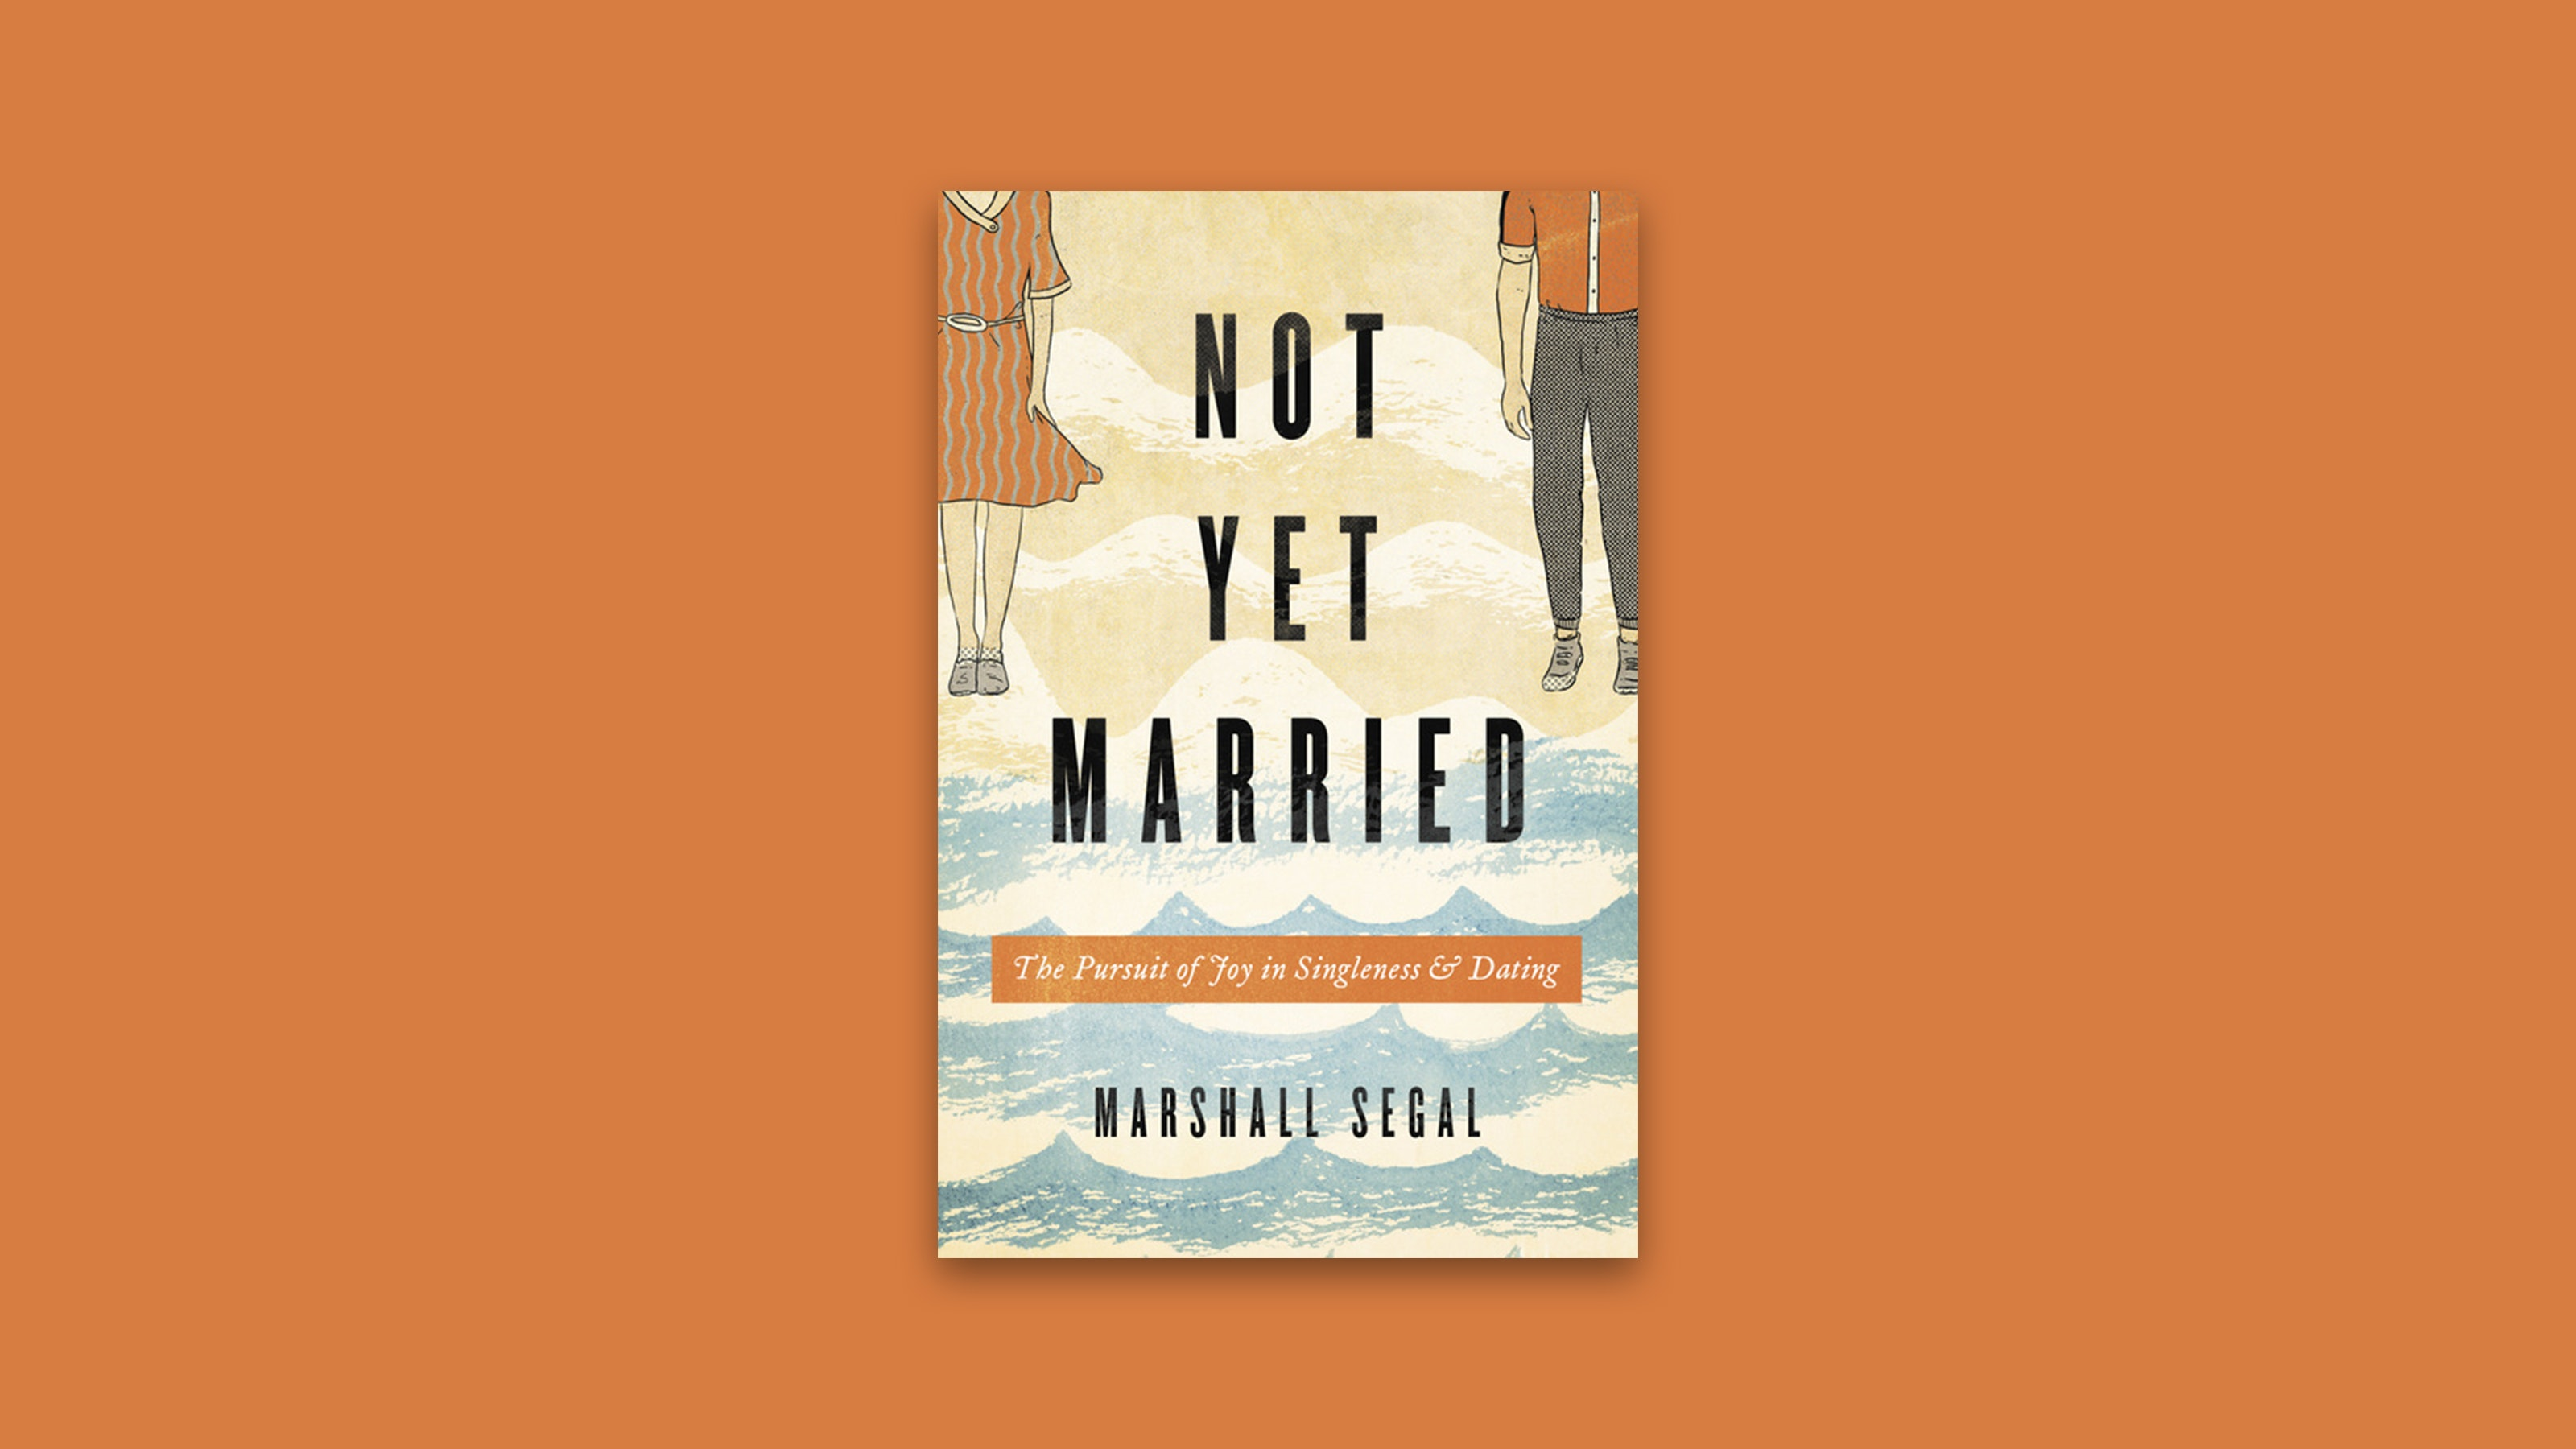 Free Ebook Not Yet Married Desiring God